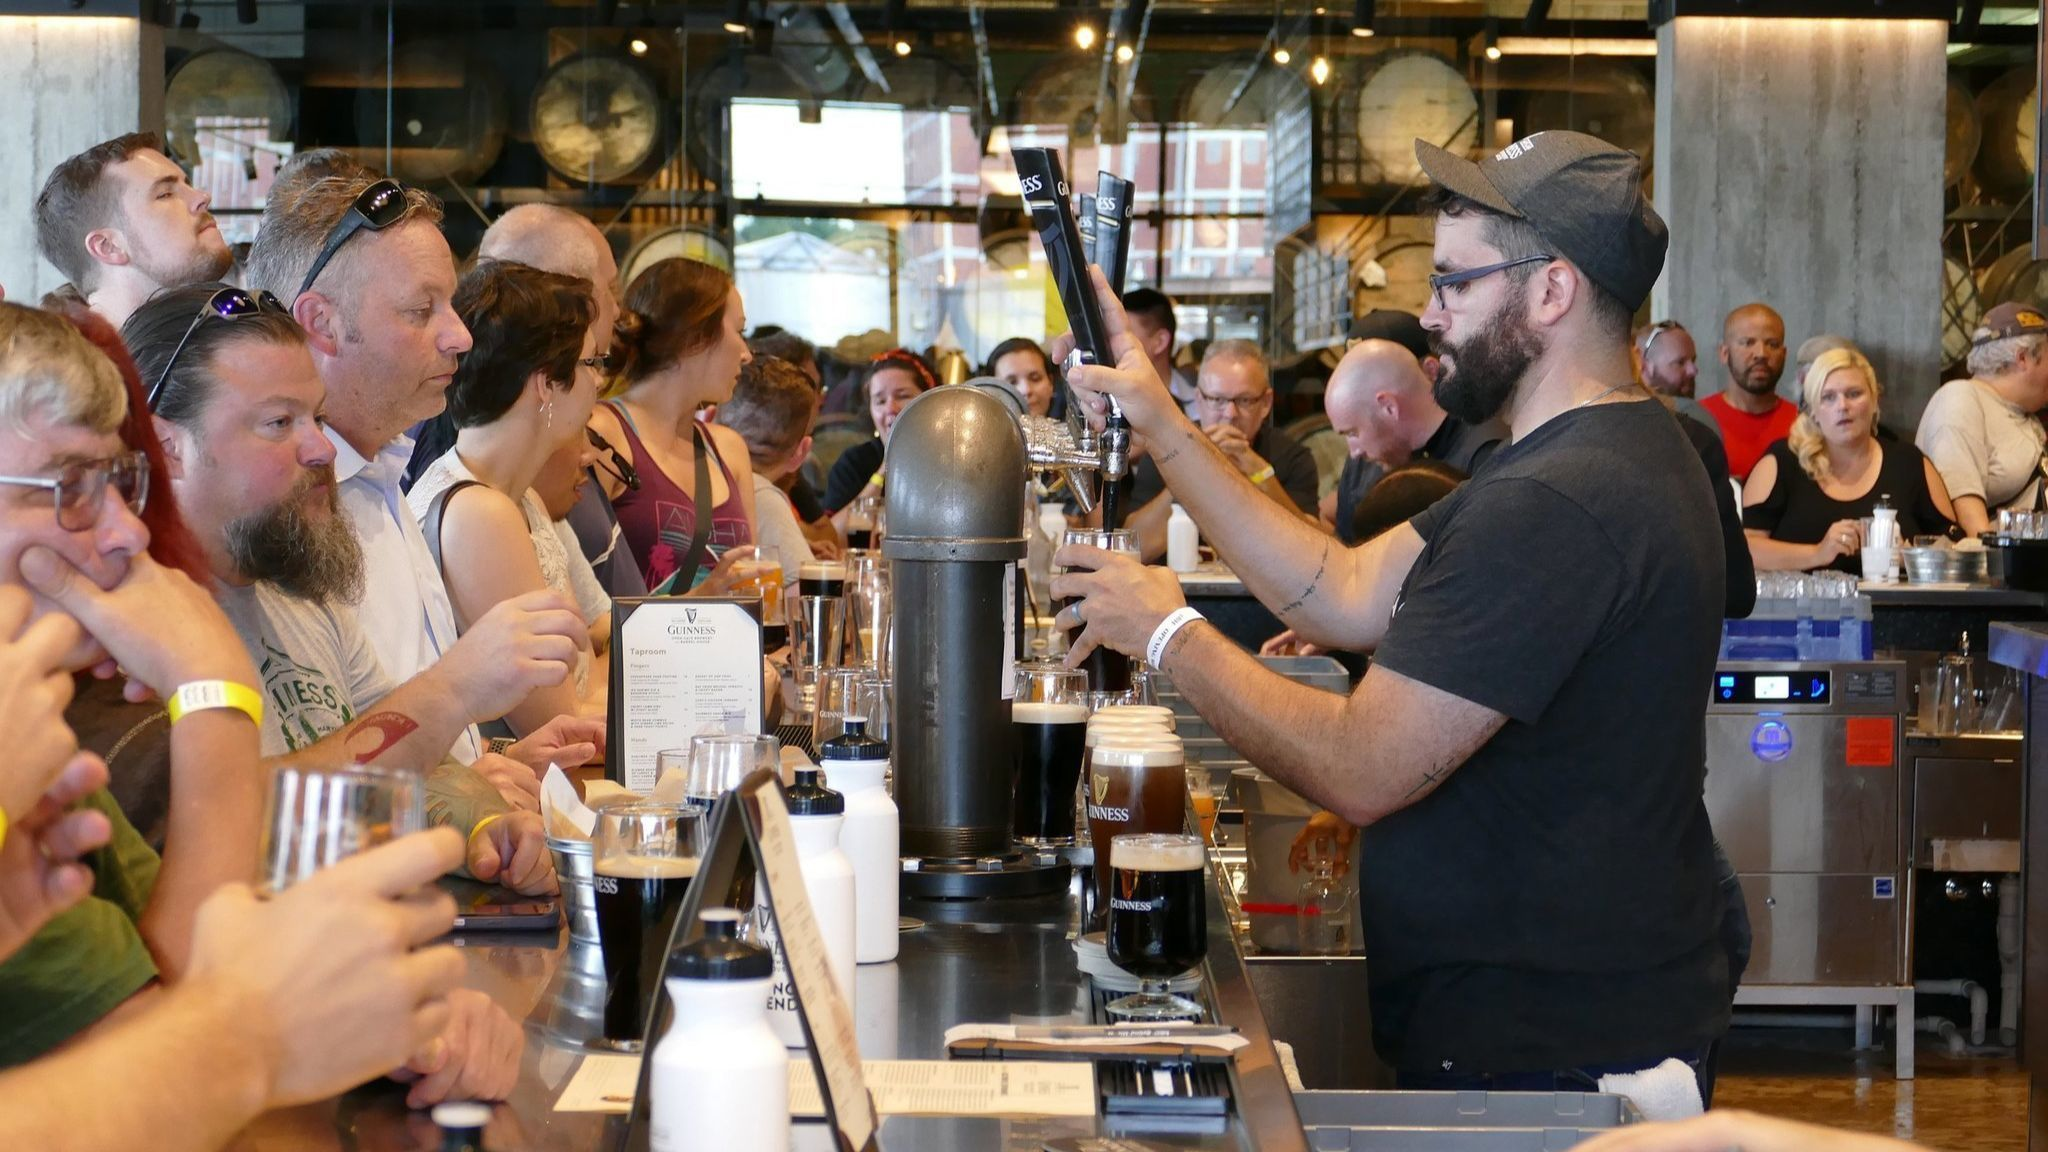 Guinness brewery in Baltimore County attracts nearly 10,000 visitors first weekend | Baltimore Sun